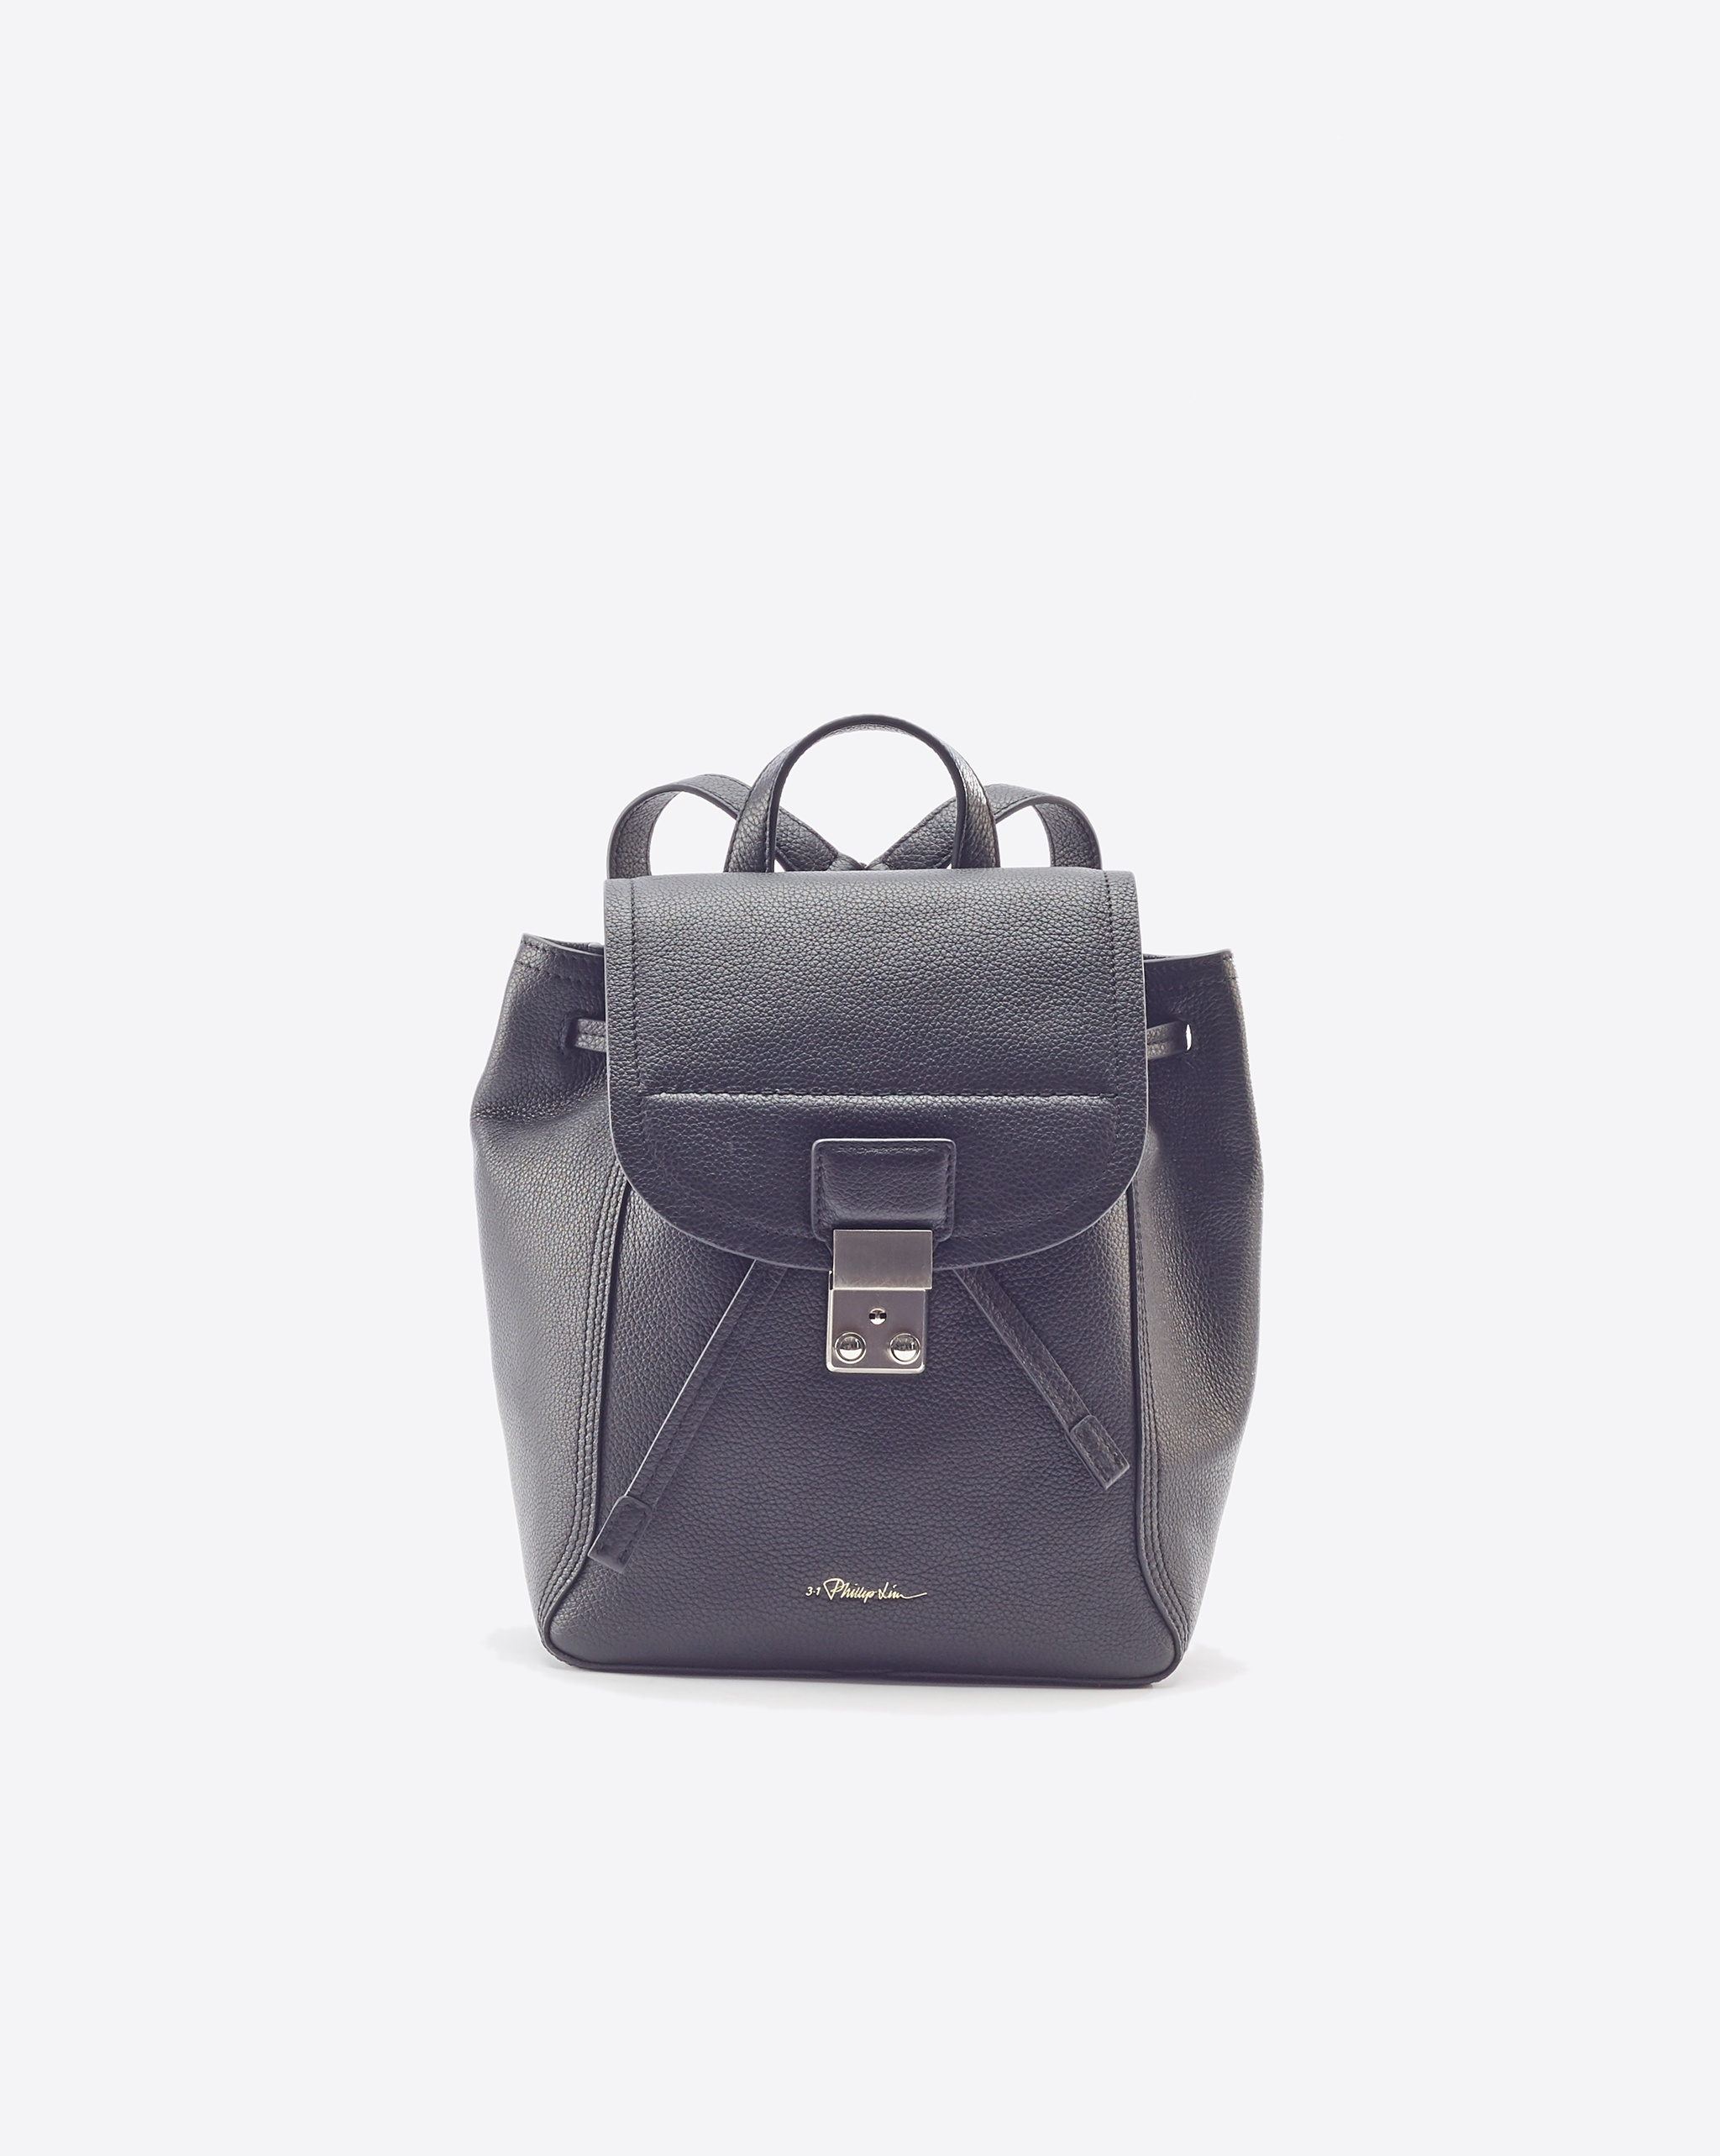 3-1-phillip-lim-pashli-soft-backpack_14387691_23327360_2048